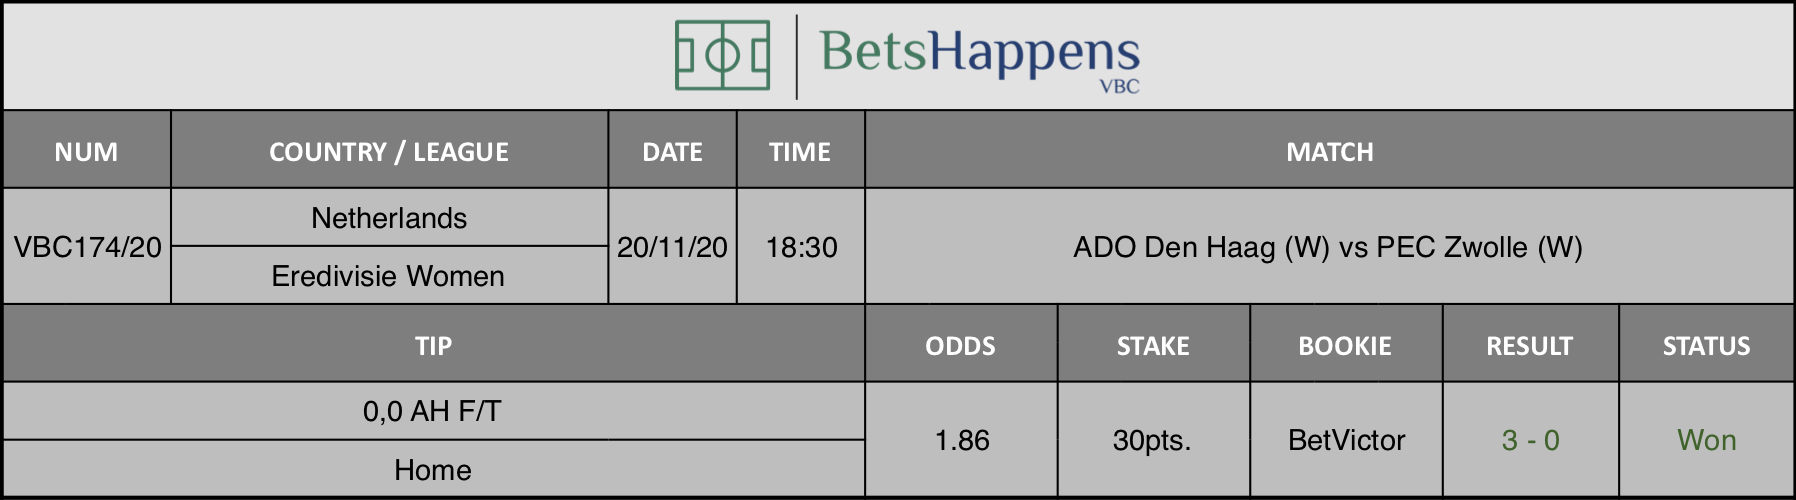 Results of our tip for the ADO Den Haag (W) vs PEC Zwolle (W) match where 0,0 AH F/T  Home is recommended.